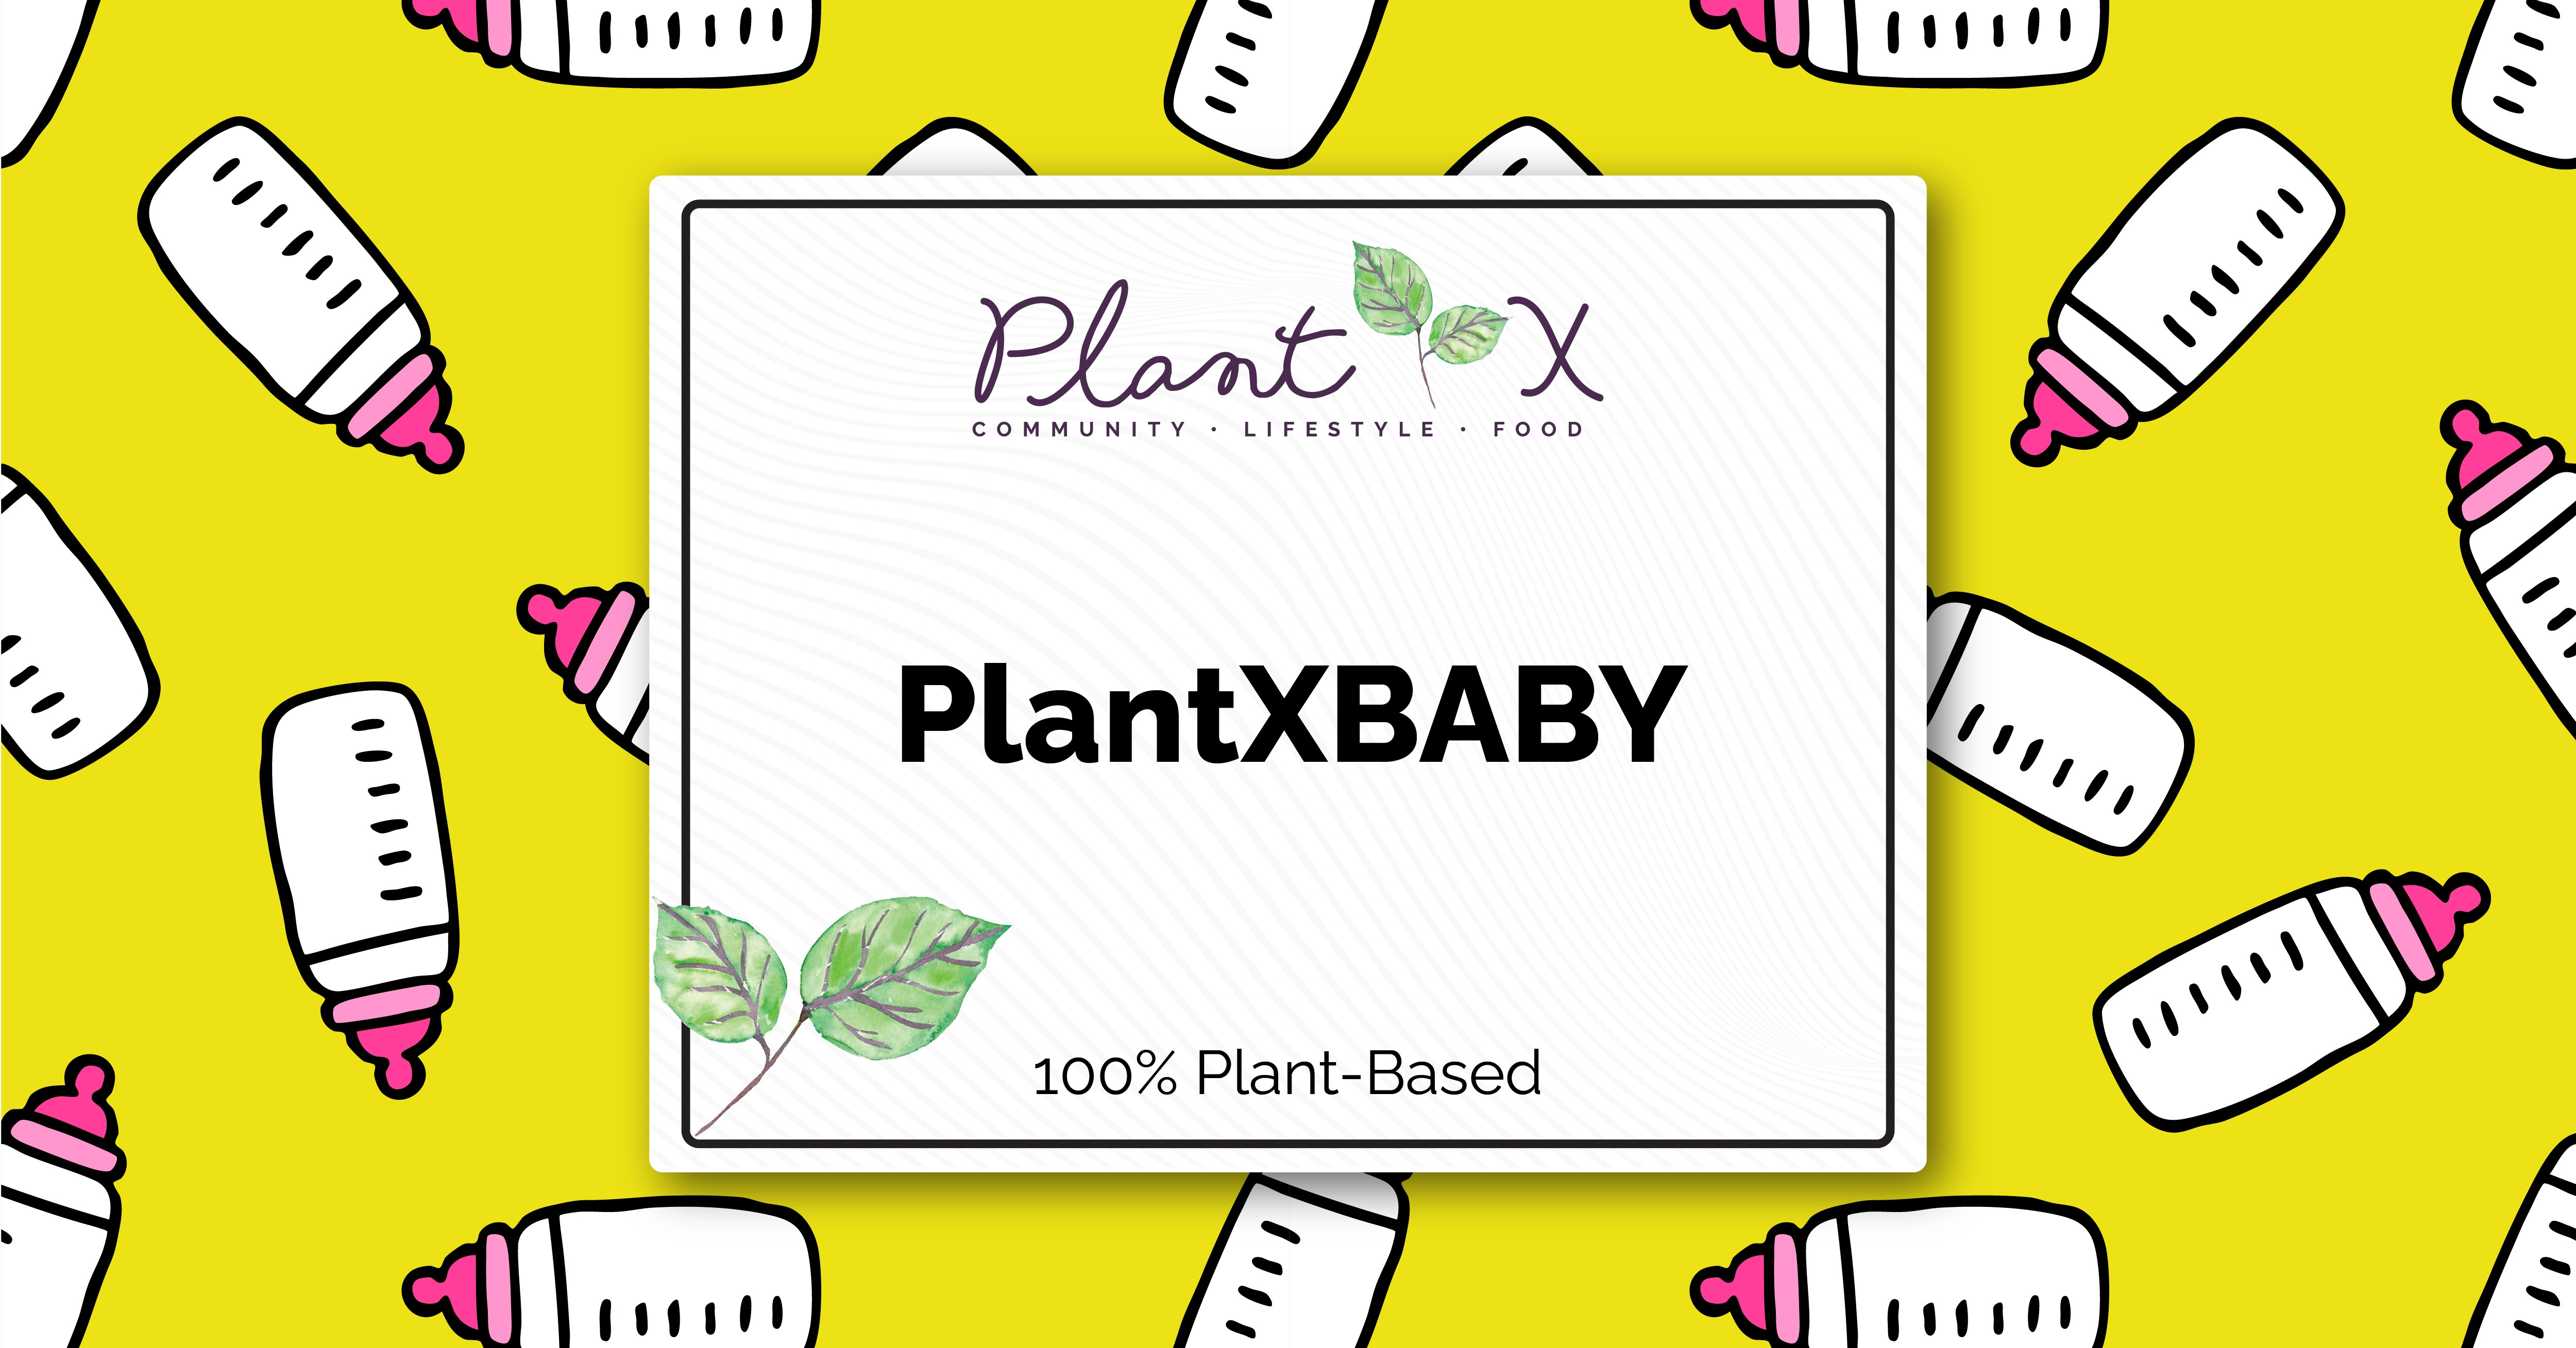 PlantX Launches Baby Products Vertical with Else Nutrition